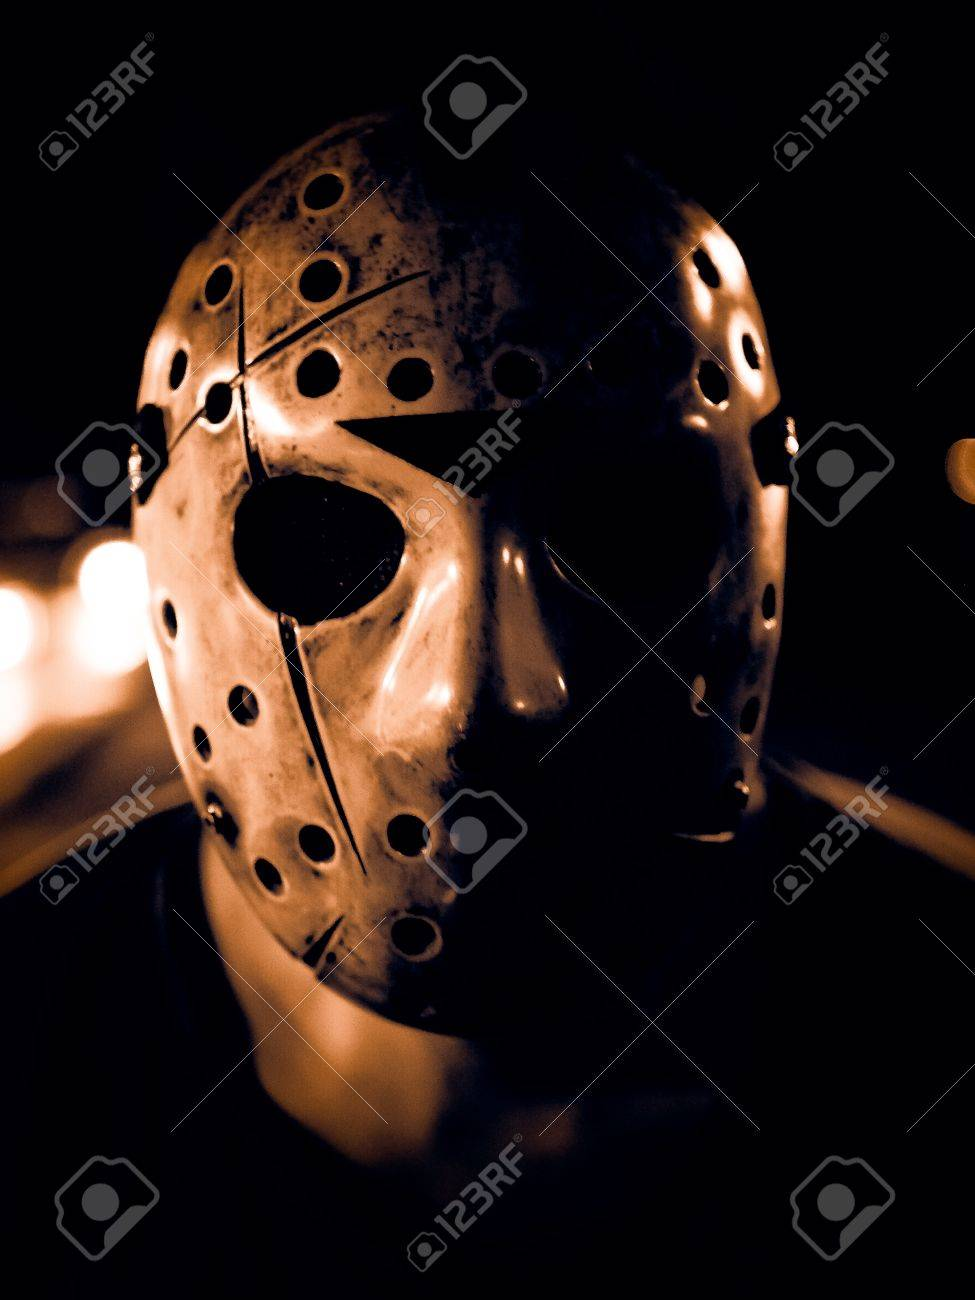 Halloween Hockey Masker.Low Key Image Of A Man Wearing Scary Hockey Mask For Halloween